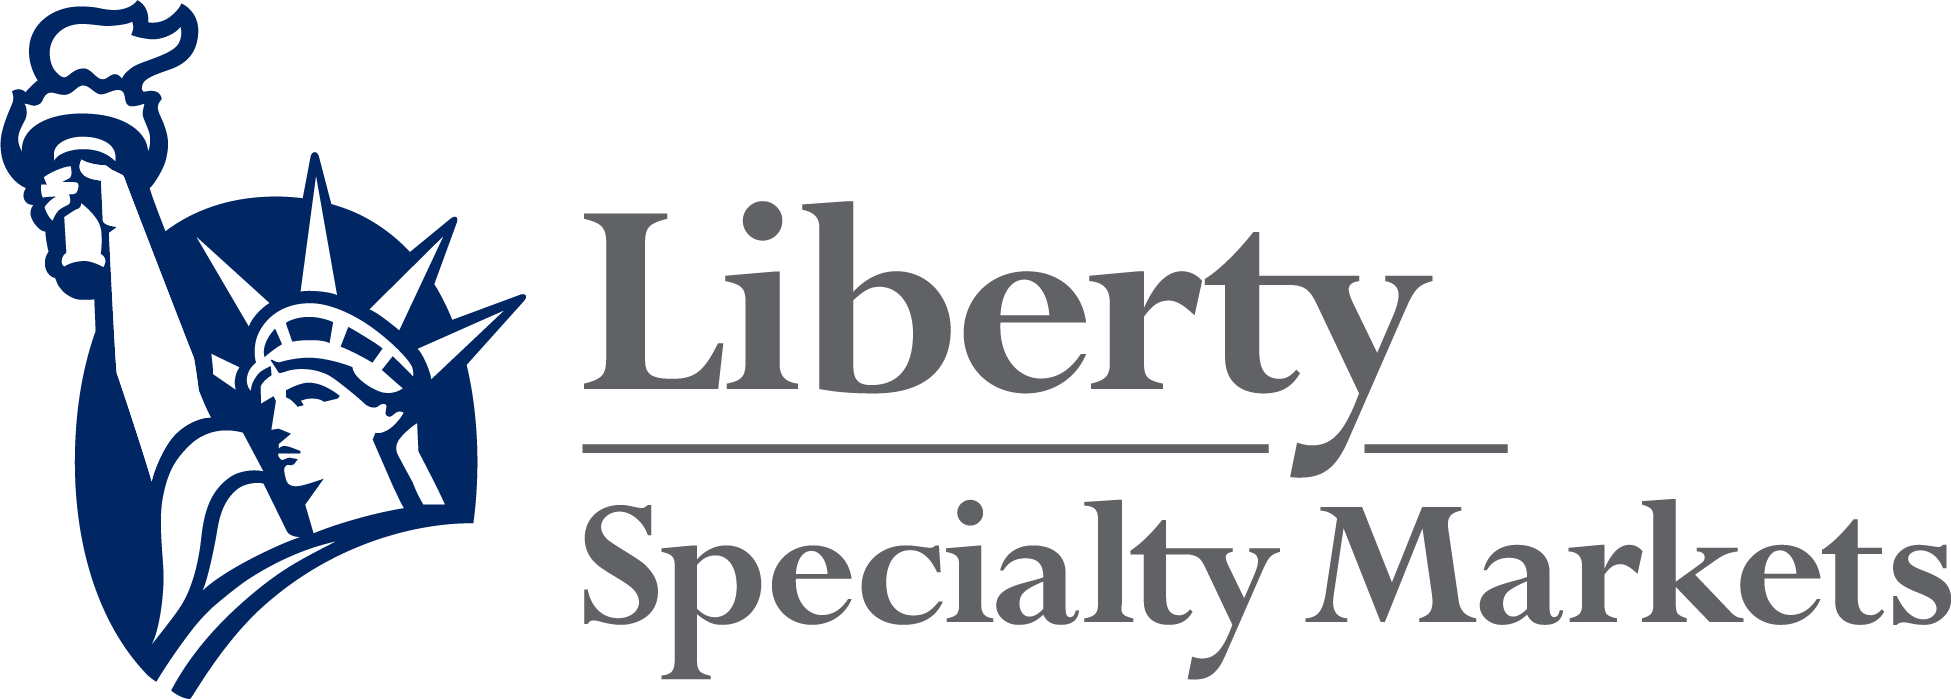 Liberty_Specialty_Markets_RGB_2Color